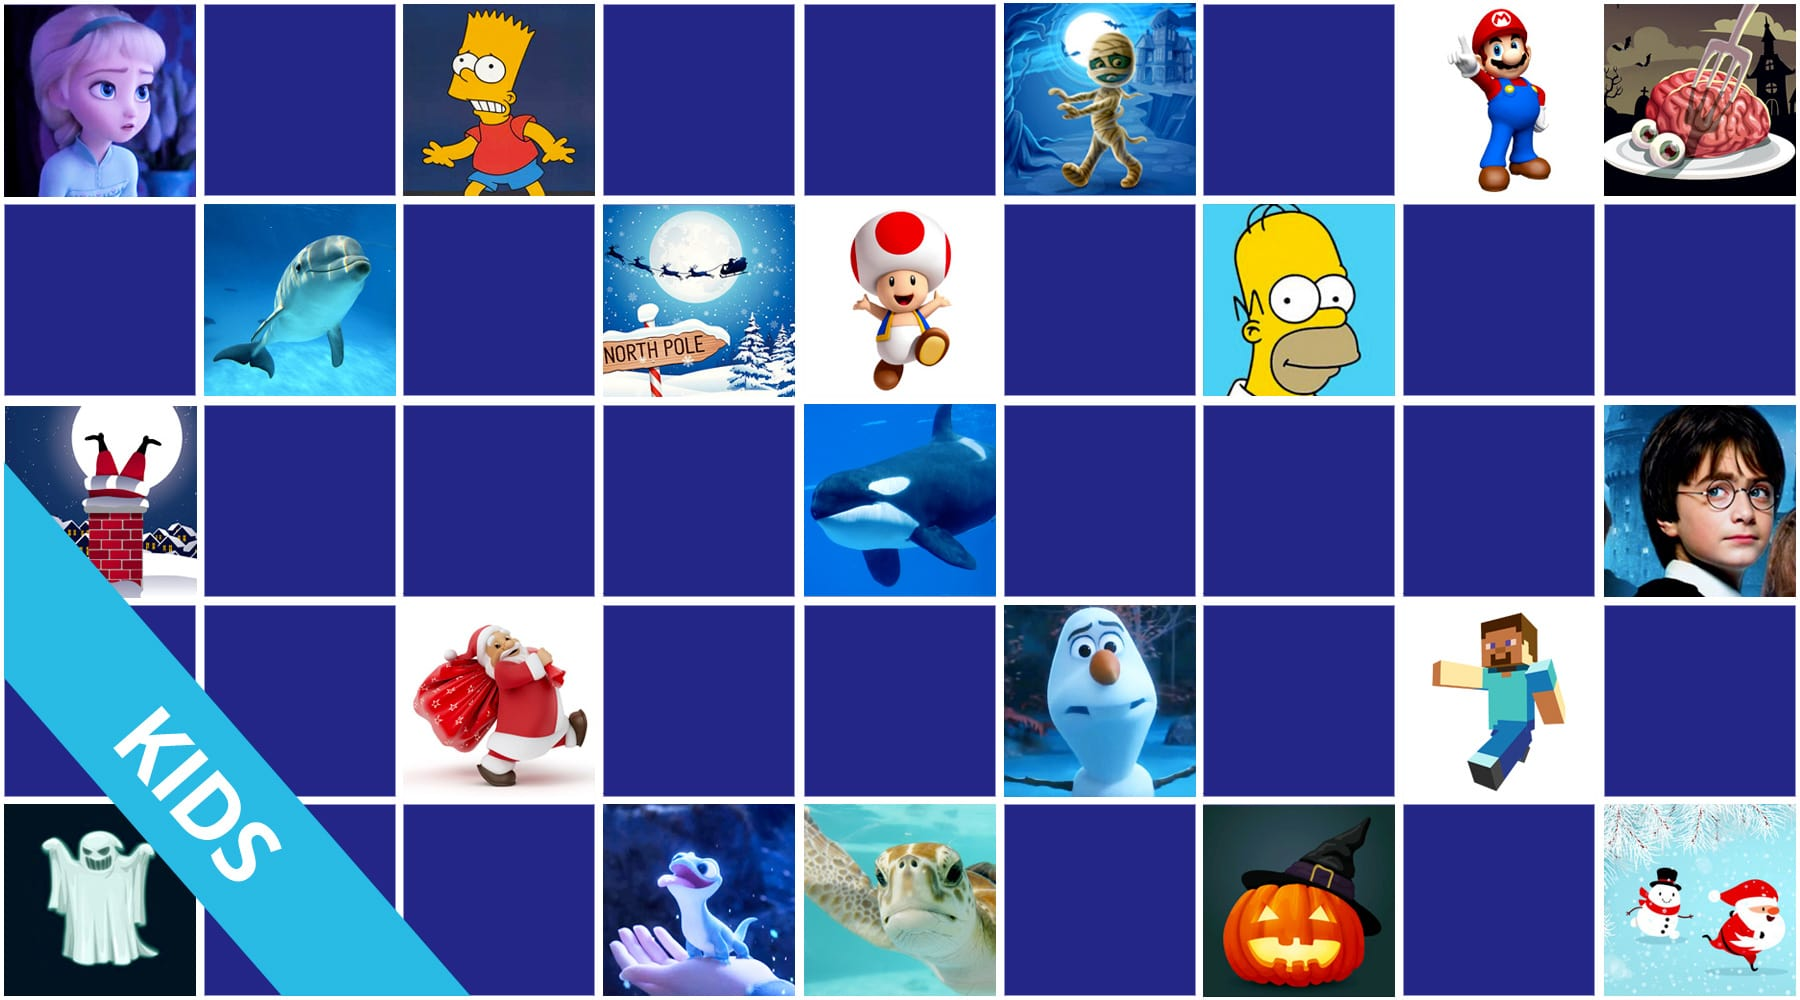 many memory games for kids 4 year olds online and free games!free memory games online for kids 4 years old (14)